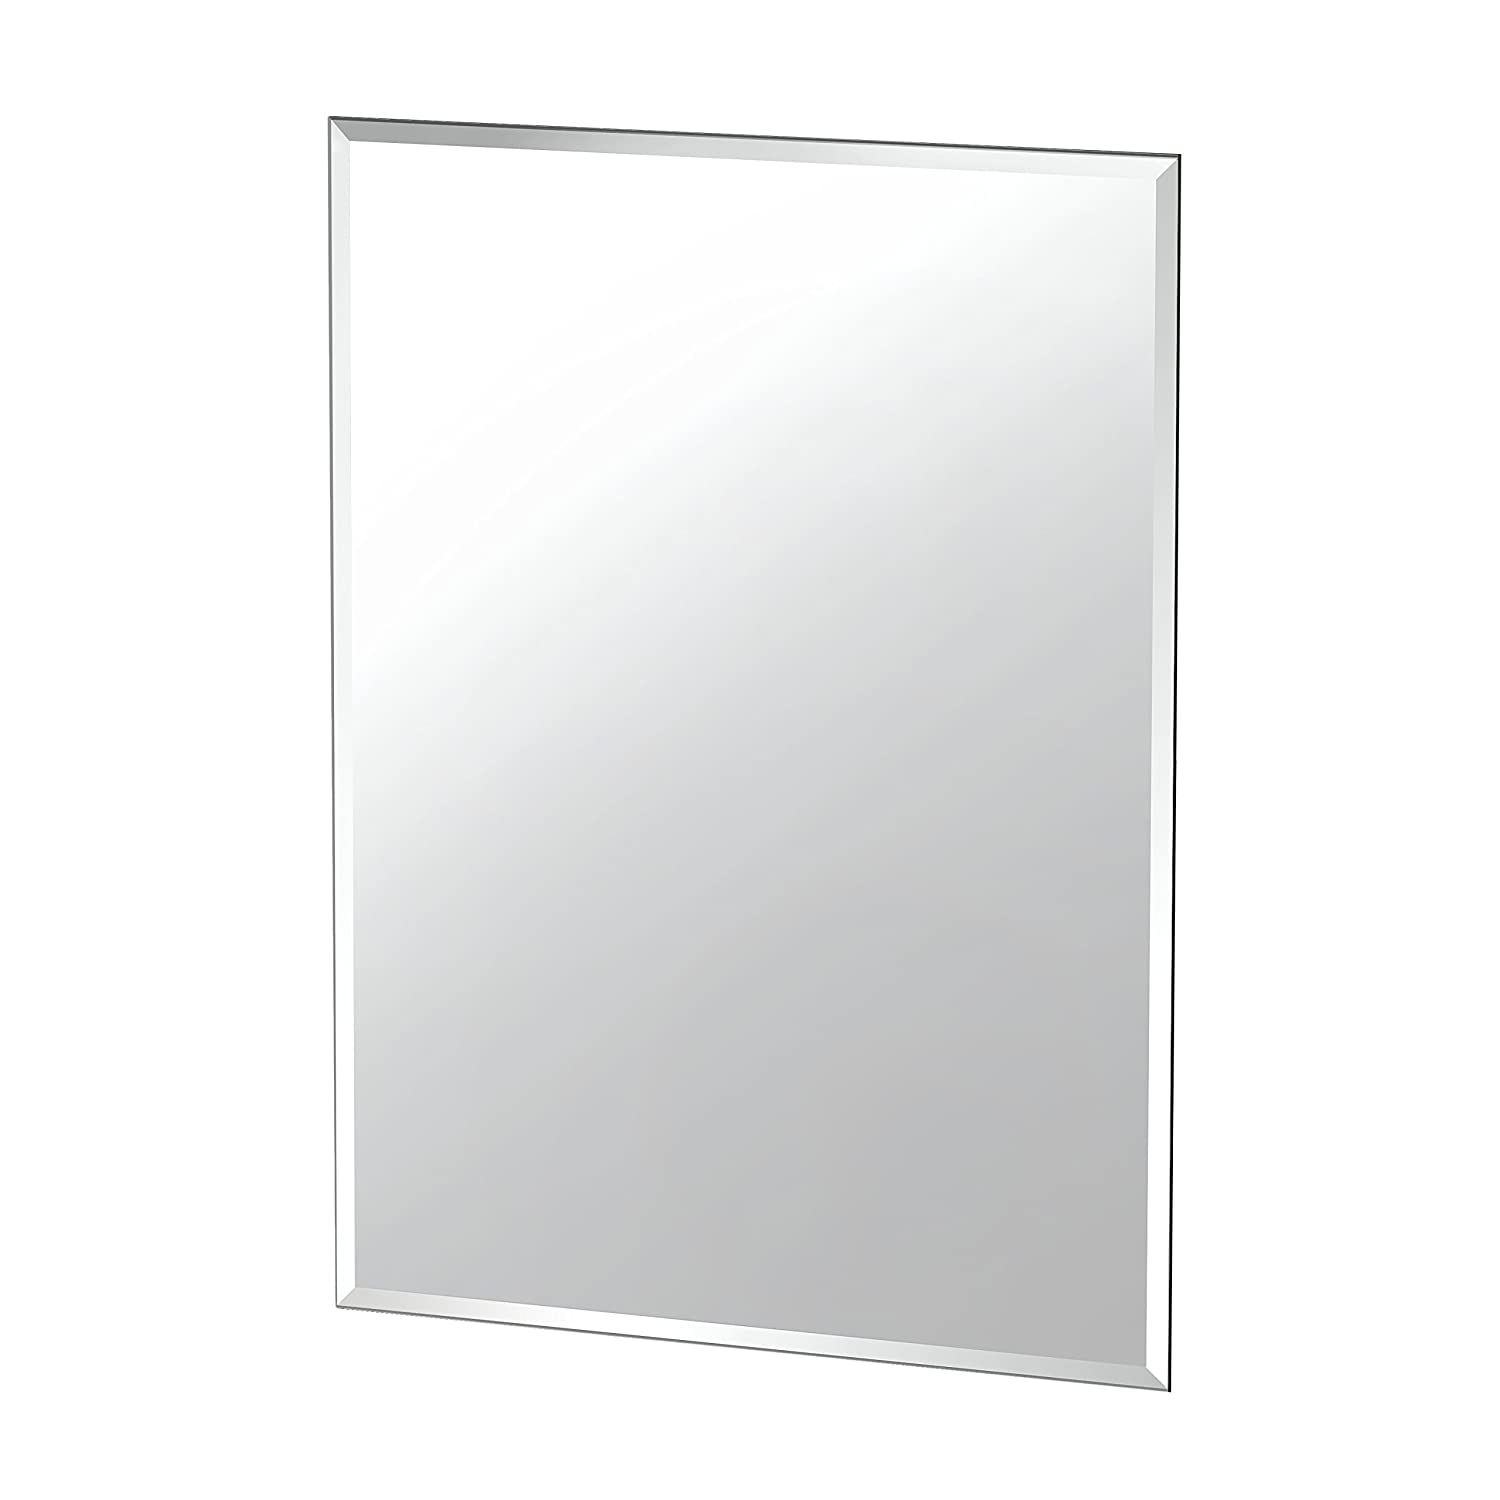 Gatco 1802 Flush Mount Frameless Rectangle Mirror 31.5-inch